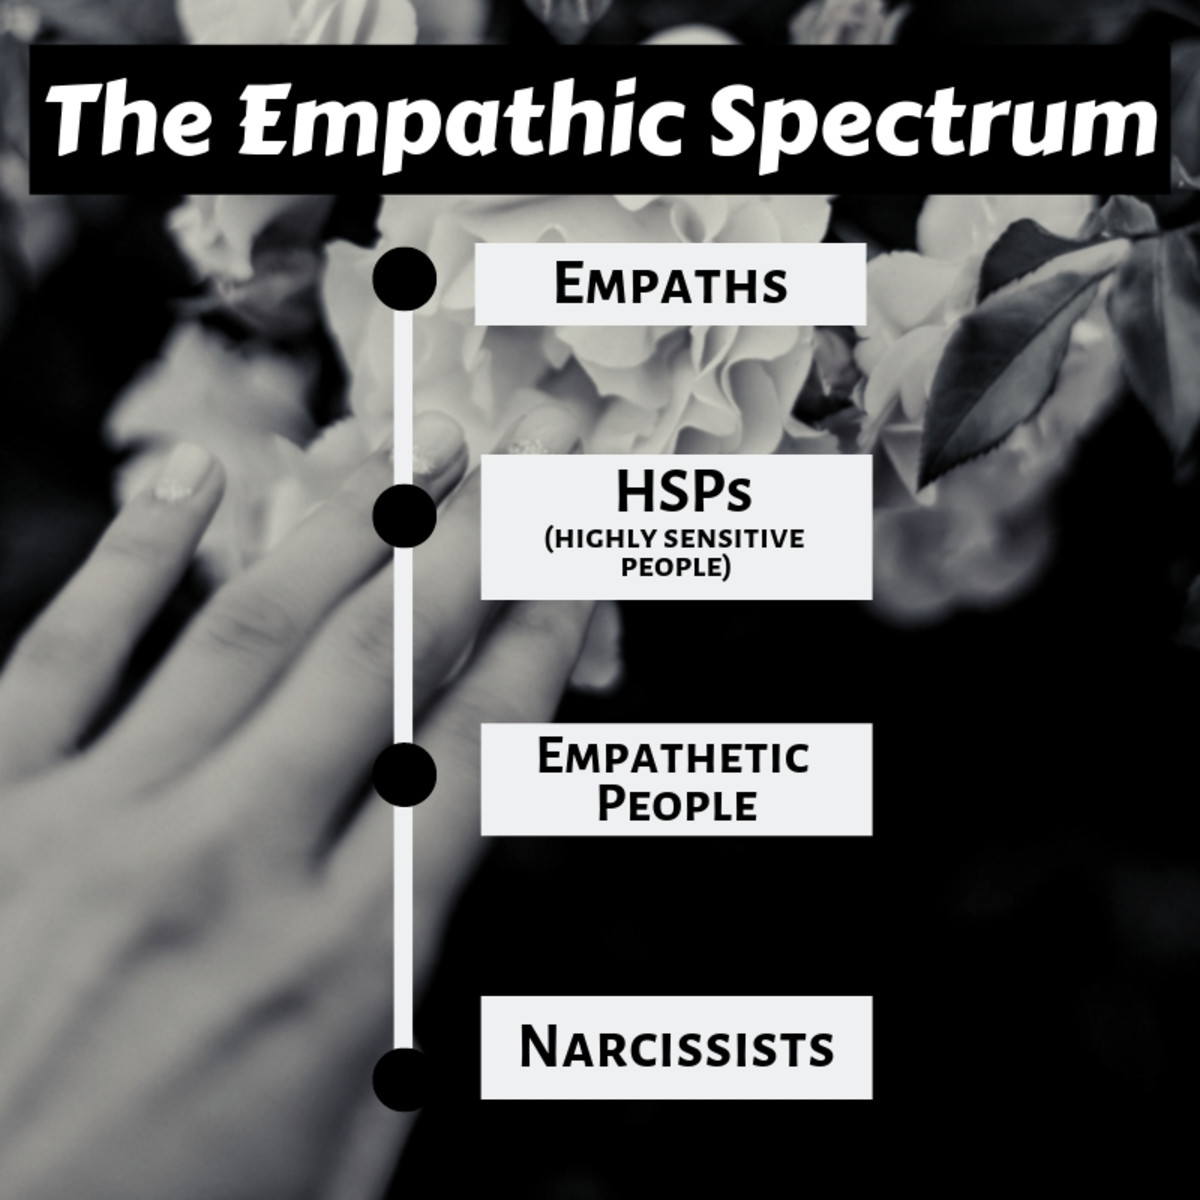 The empathic spectrum. Narcissist cannot empathize with others because they are self-absorbed while empaths feel others' emotions as if those emotions were their own.